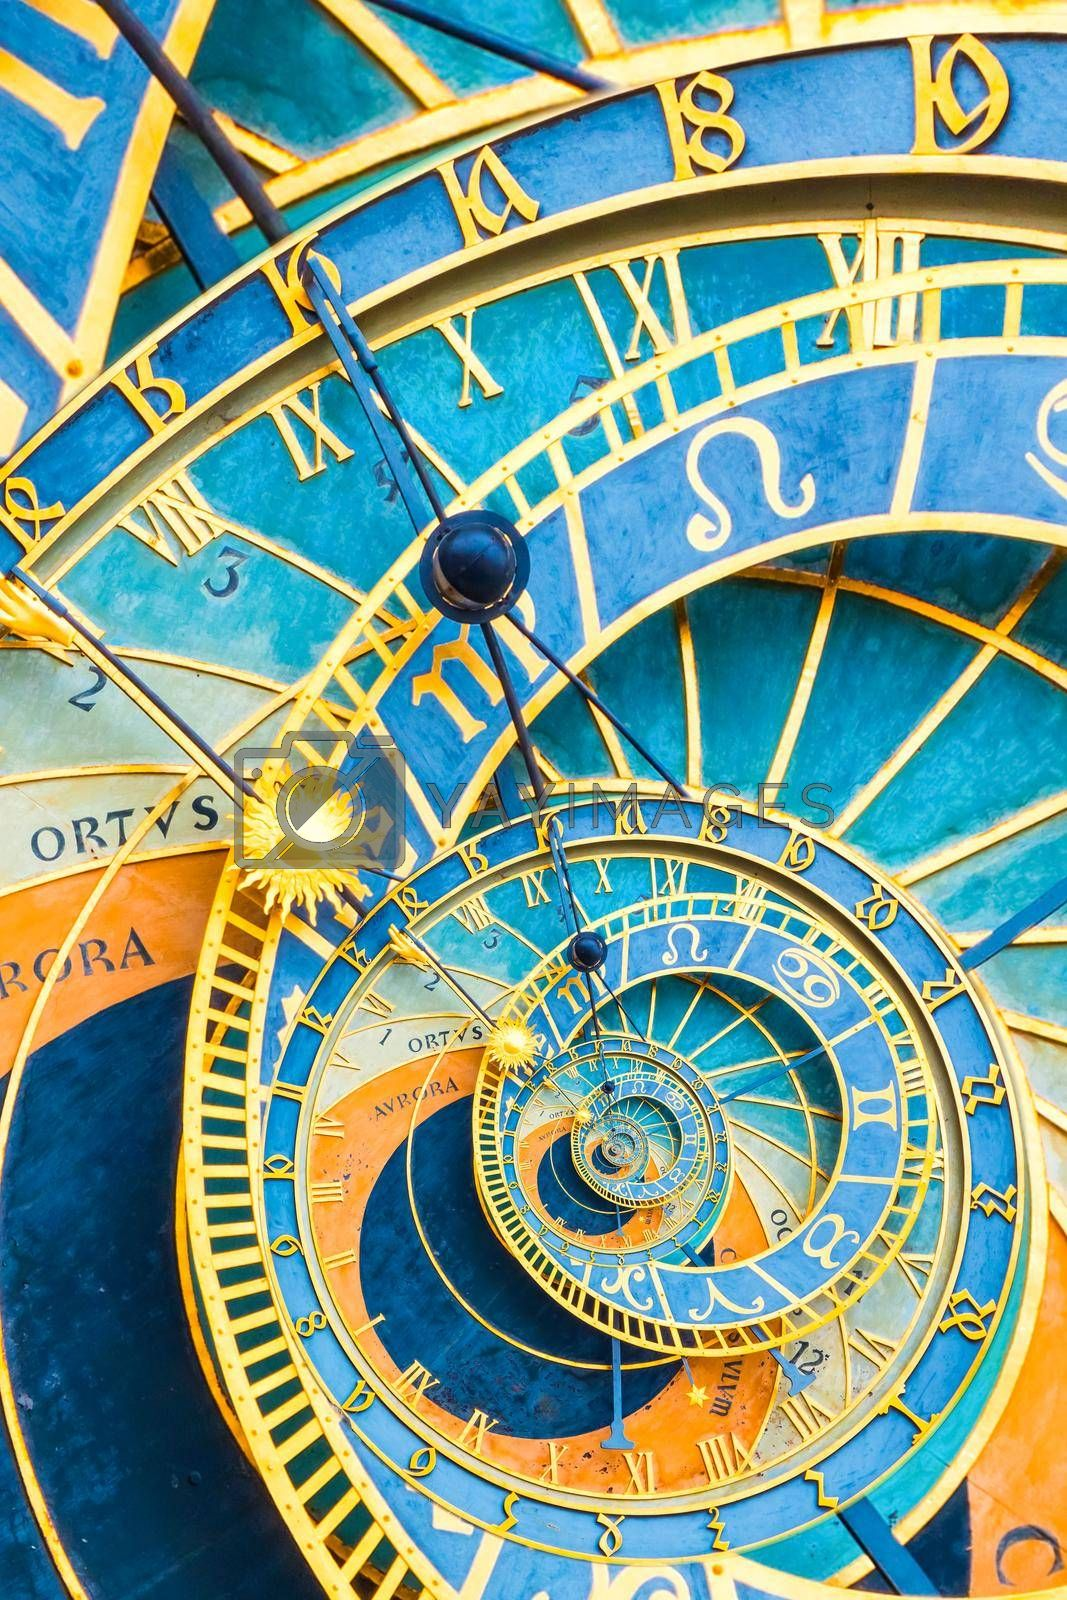 Droste effect background based on Prague astronimical clock. Abstract design for concepts related to astrology, fantasy, time and magic.